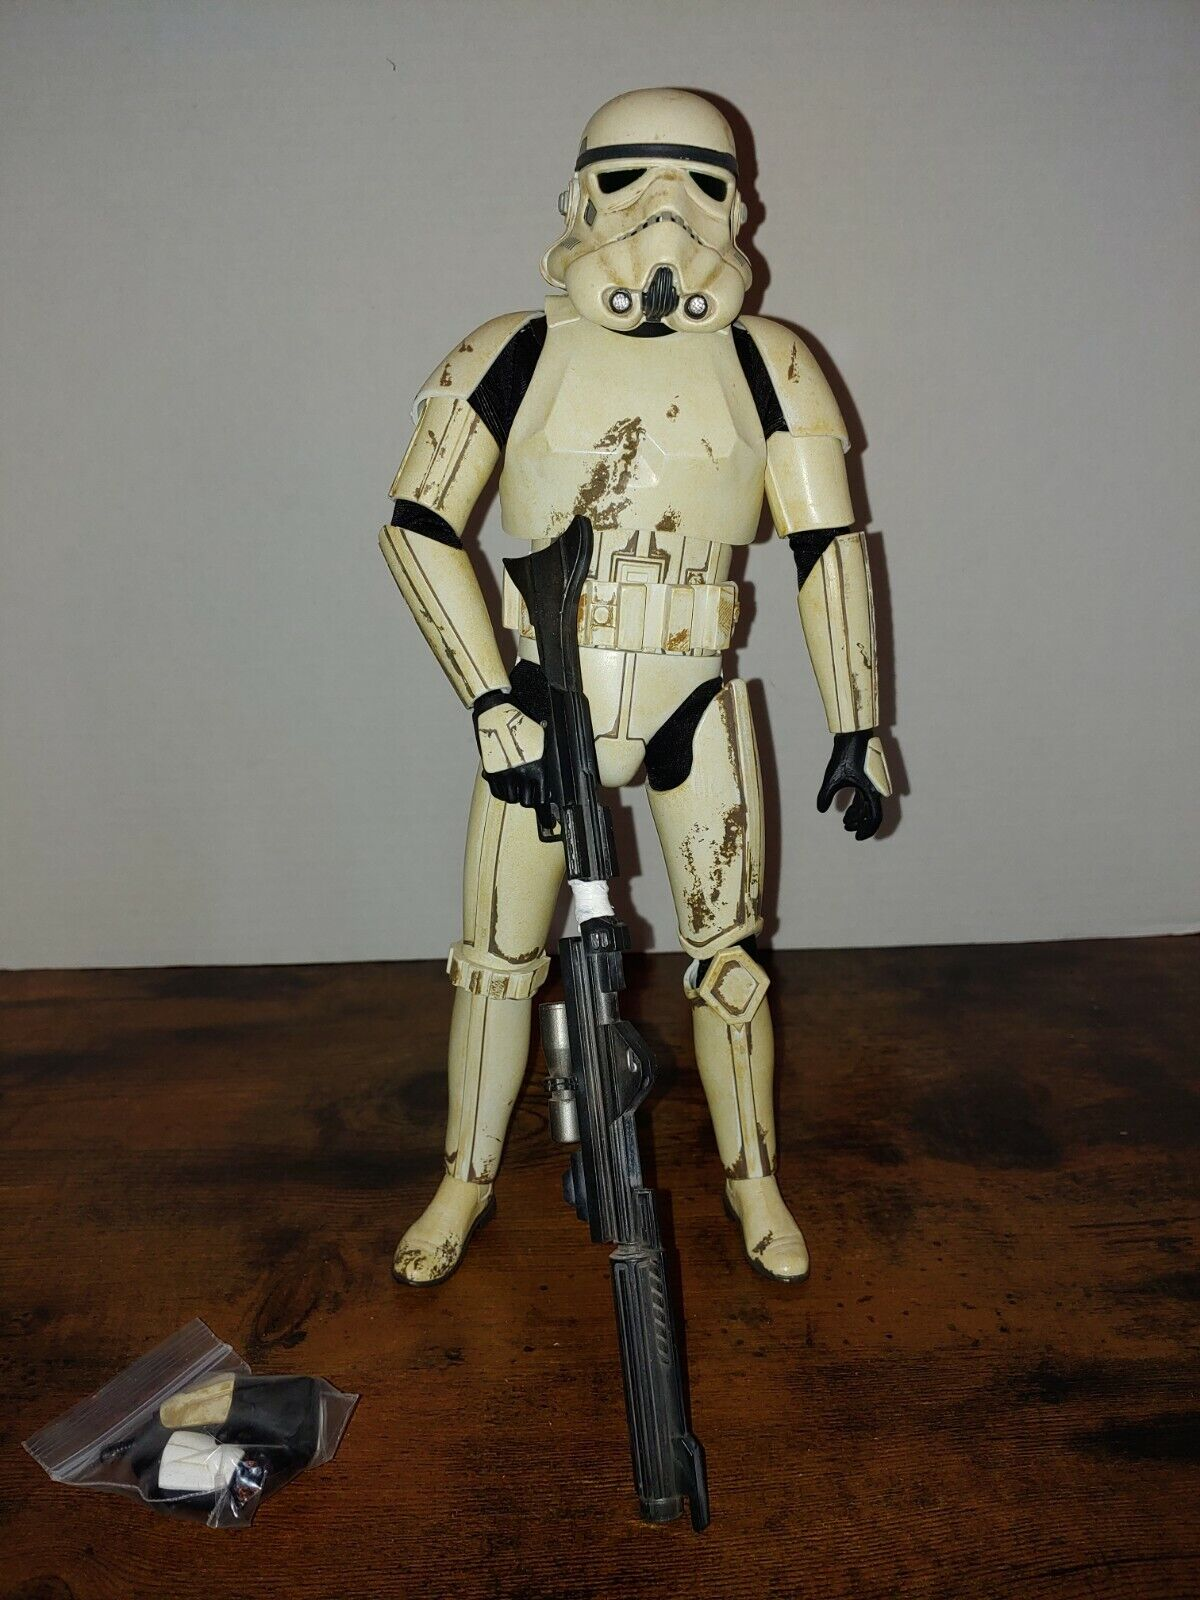 1/6 Sideshow Collectibles Stormtrooper on eBay thumbnail